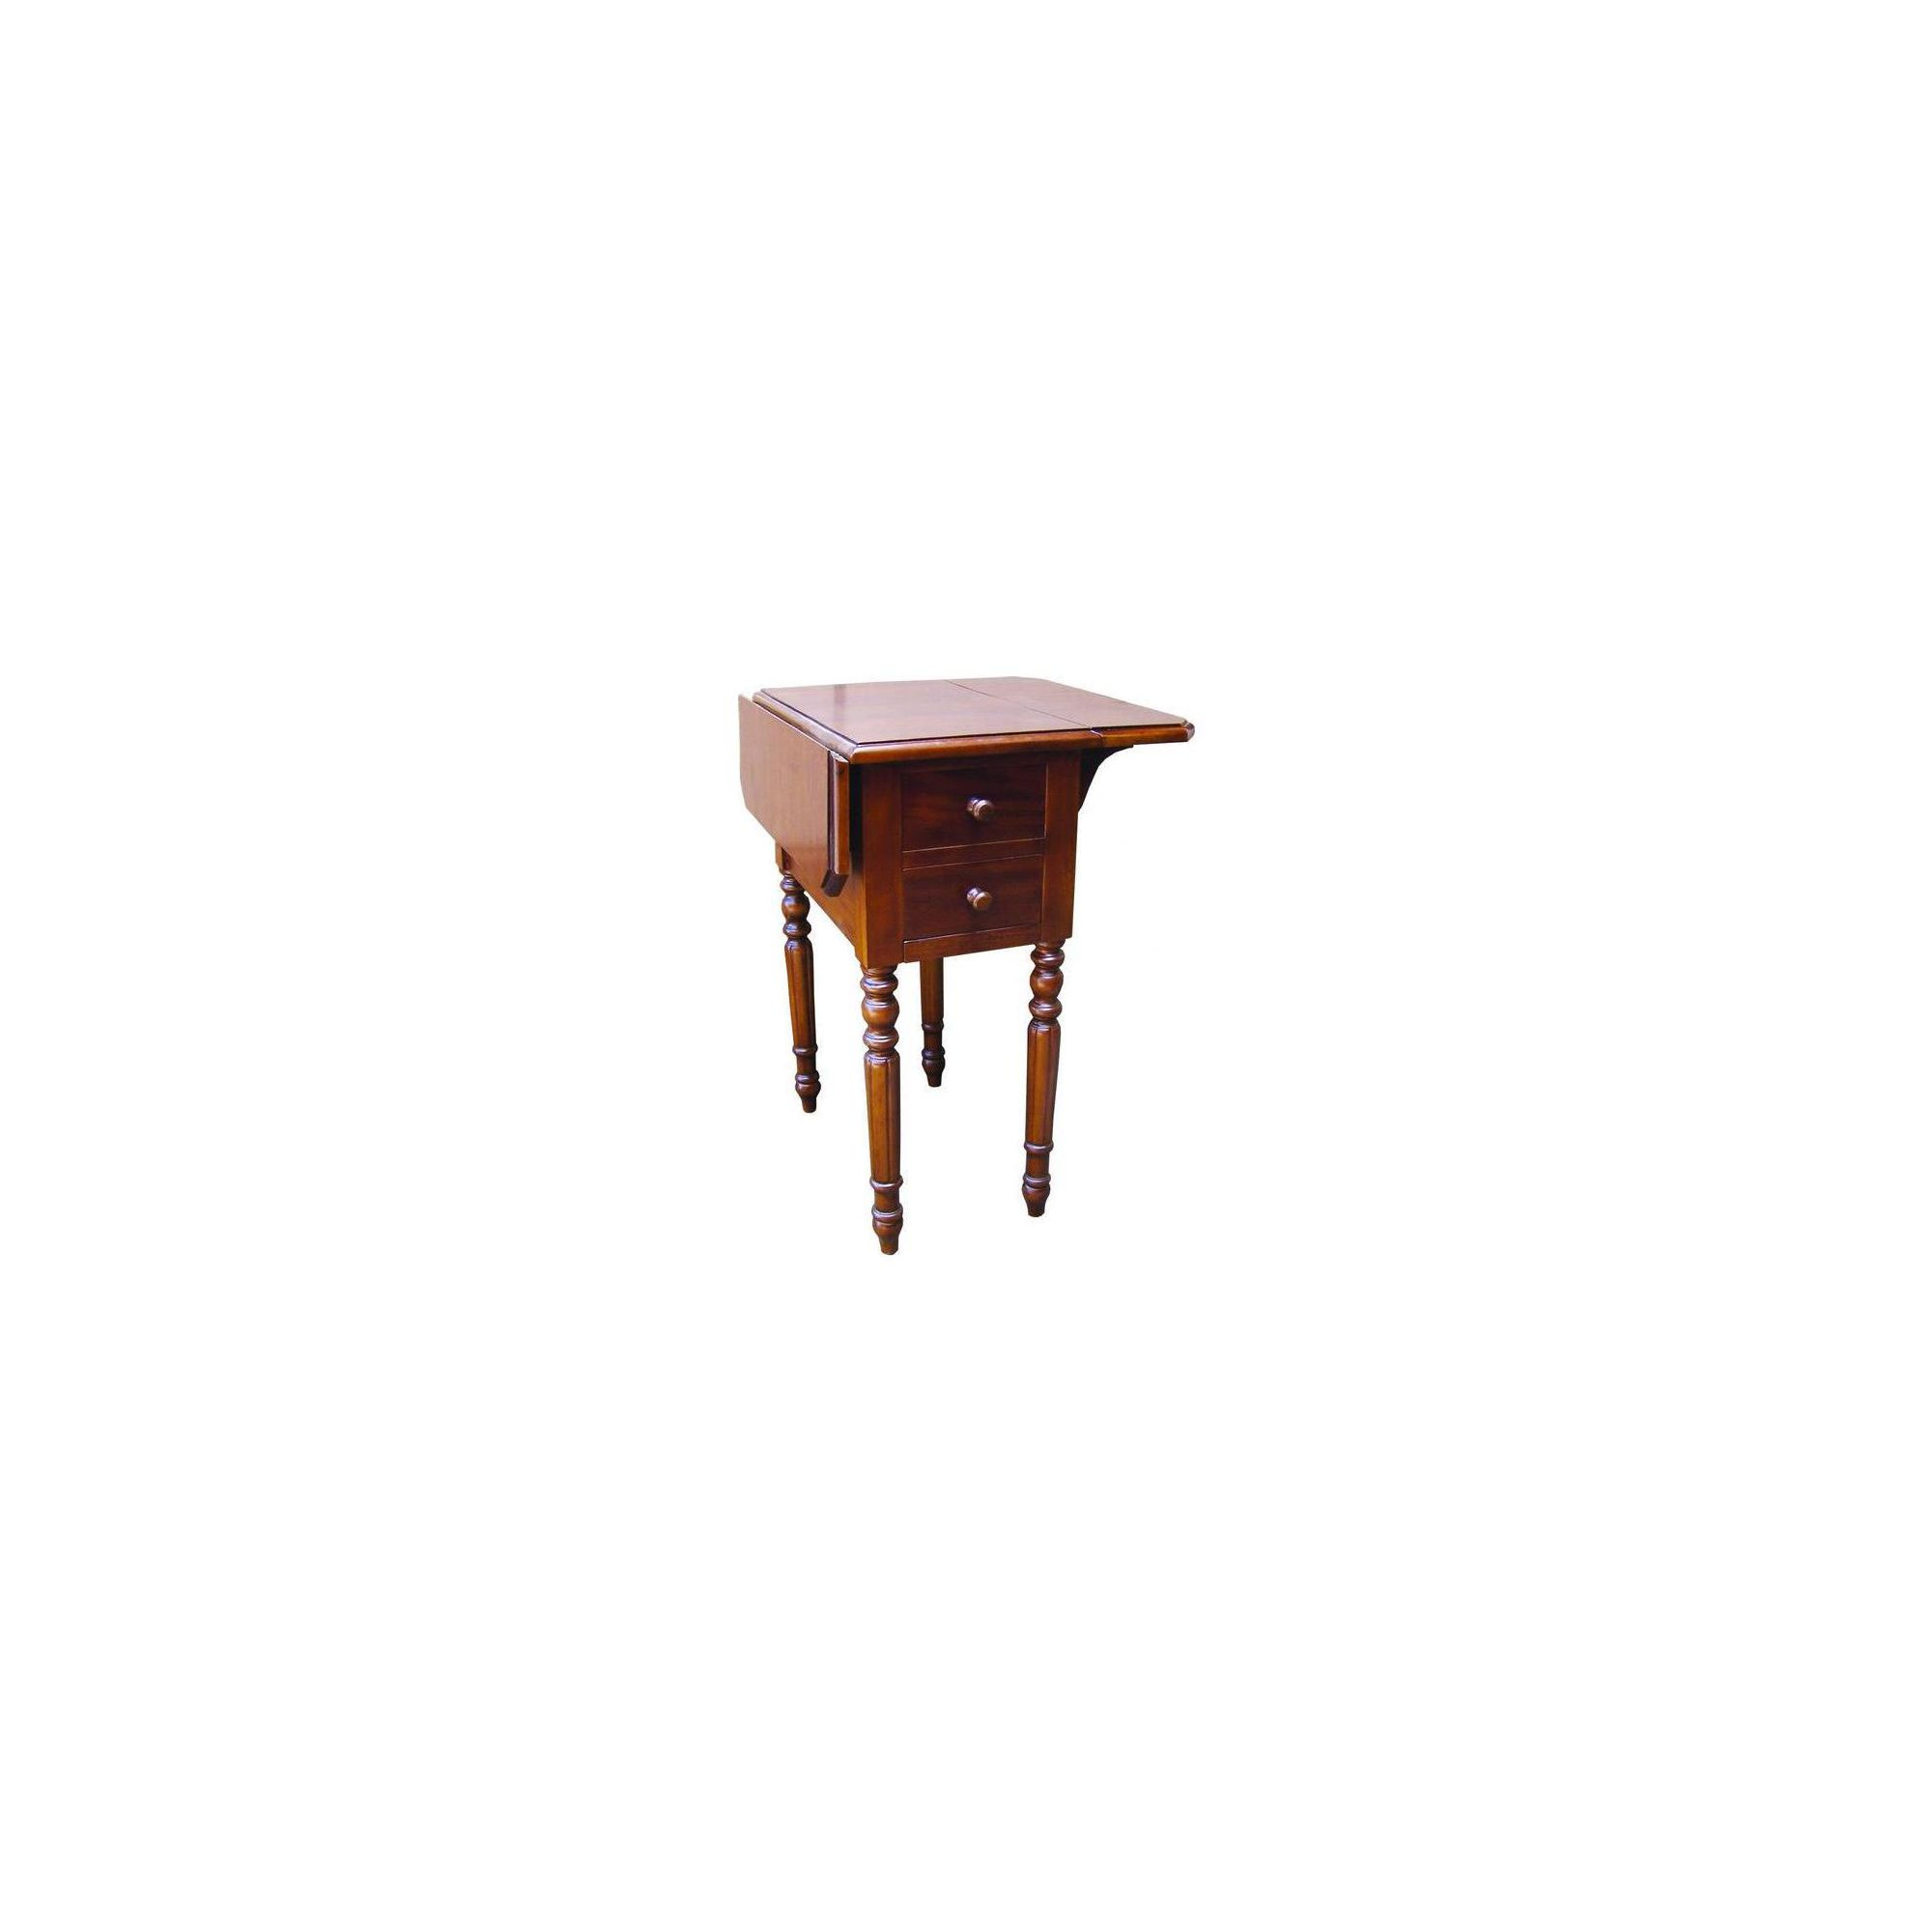 Lock stock and barrel Mahogany Small Extension Table with 2 Drawer Each Side in Mahogany at Tesco Direct